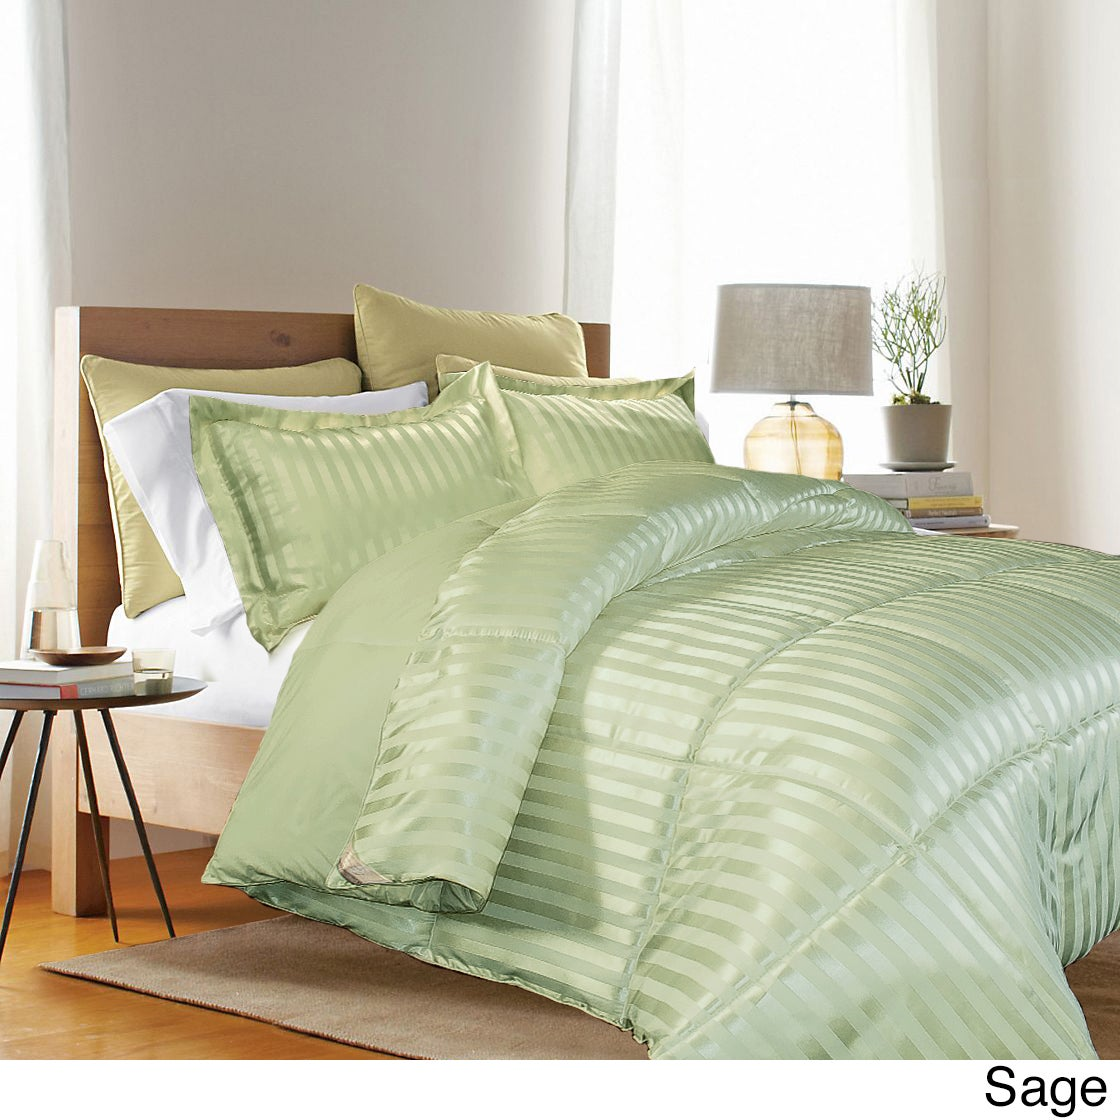 comforter sheets sham king regard quilt from plan make cotton to in size with ikea a intended ideas sage cover sets duvets savannah covers put how duvet for green bedding